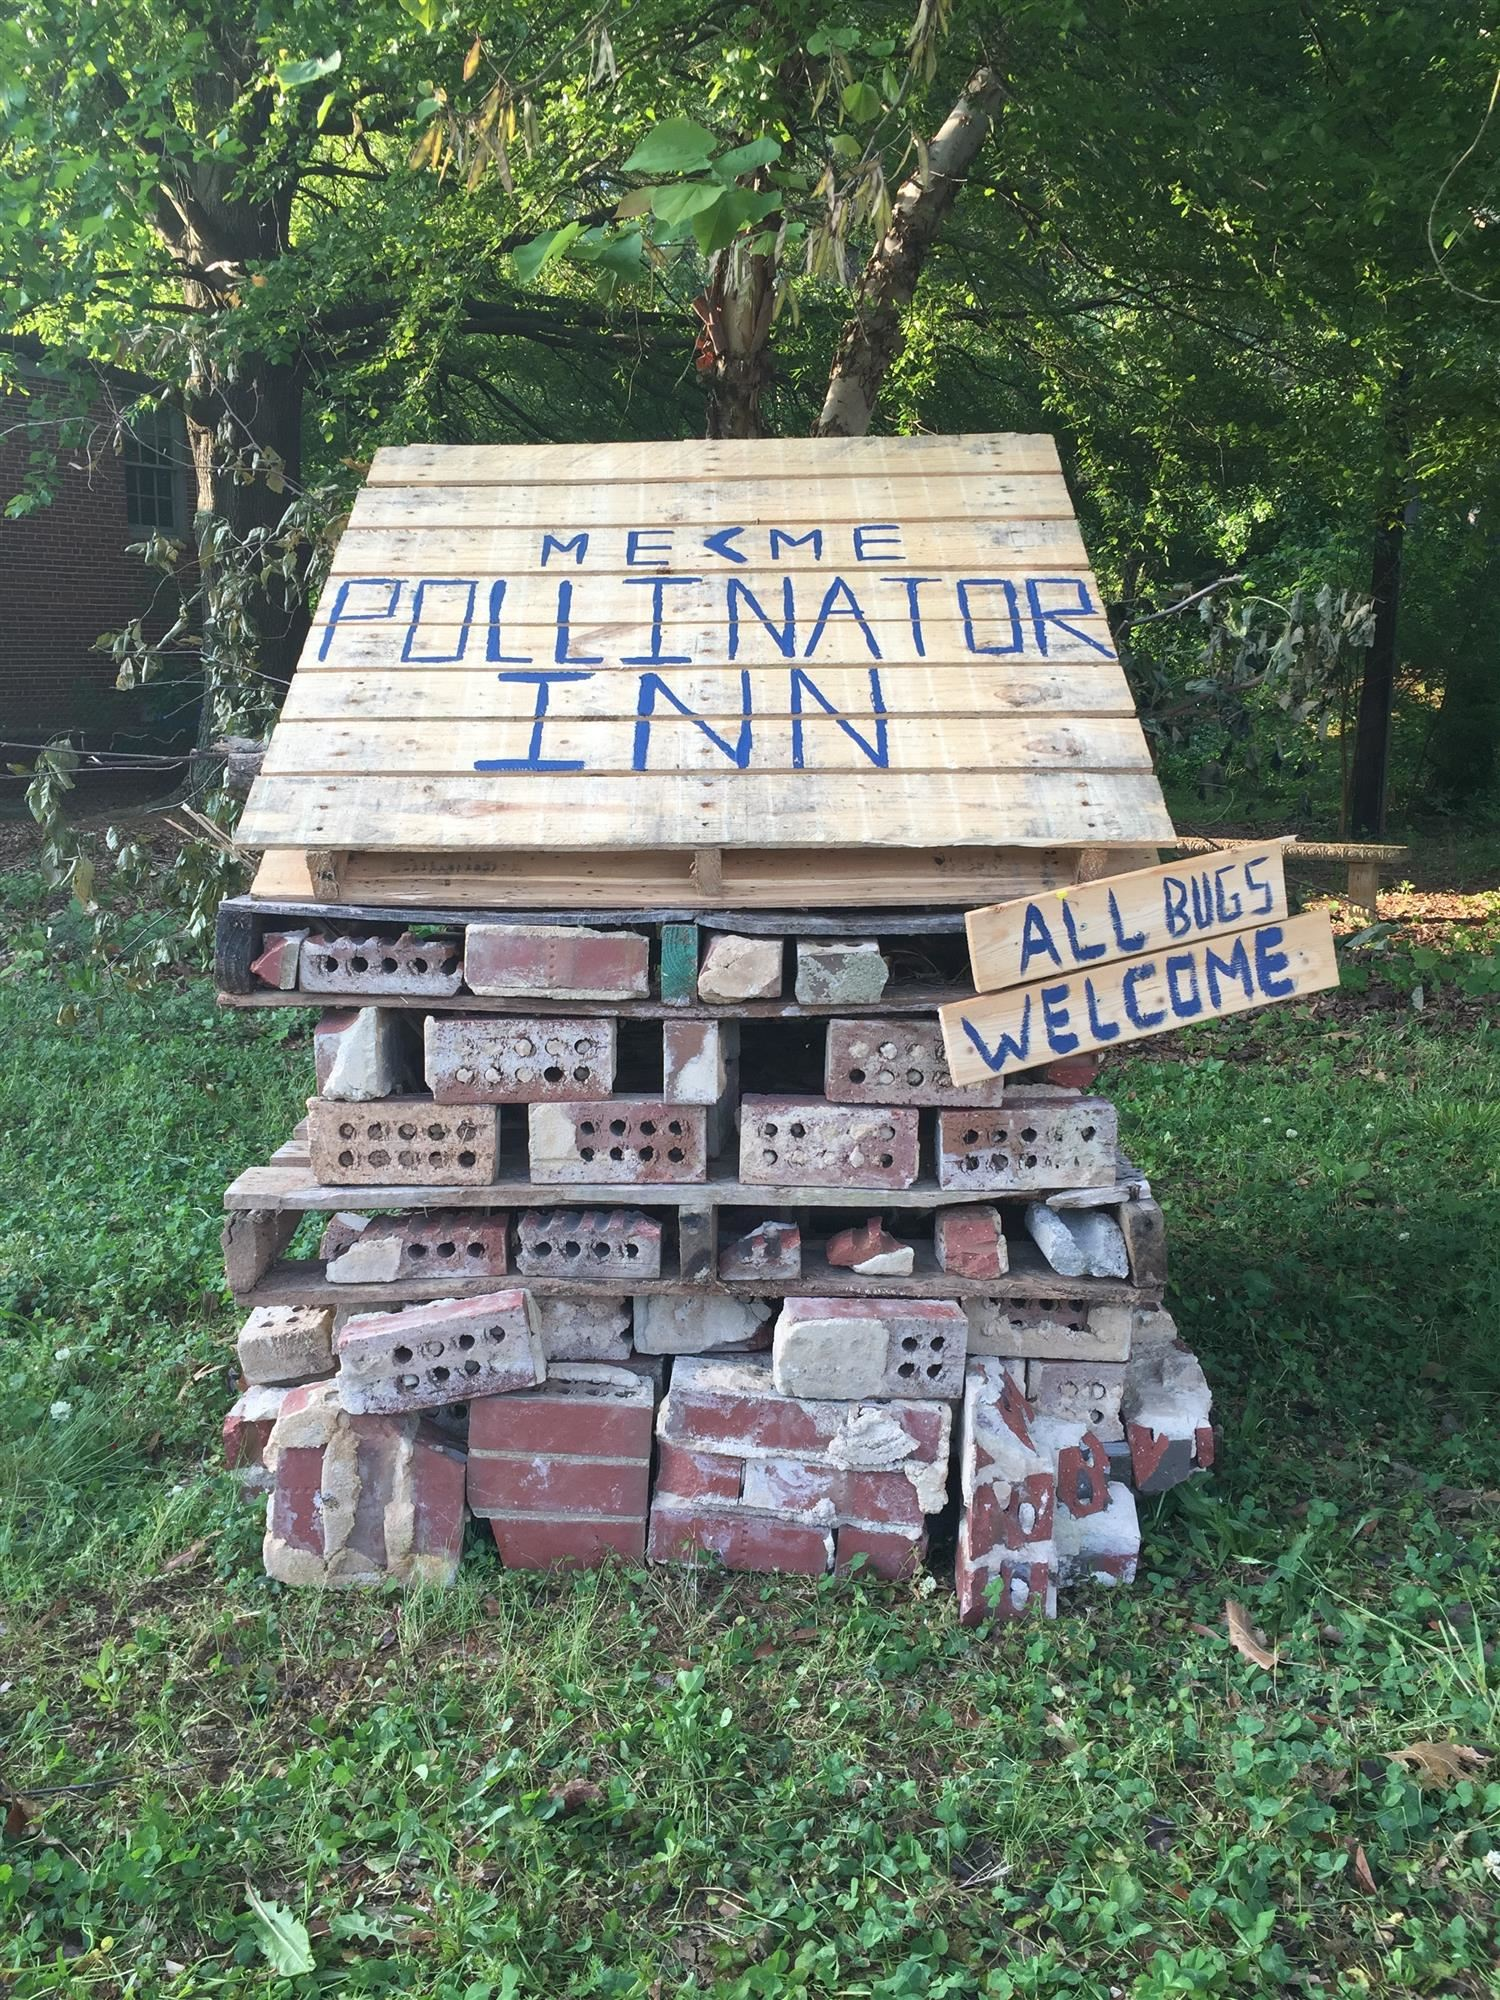 There are still some vacancies at the Pollinator Inn